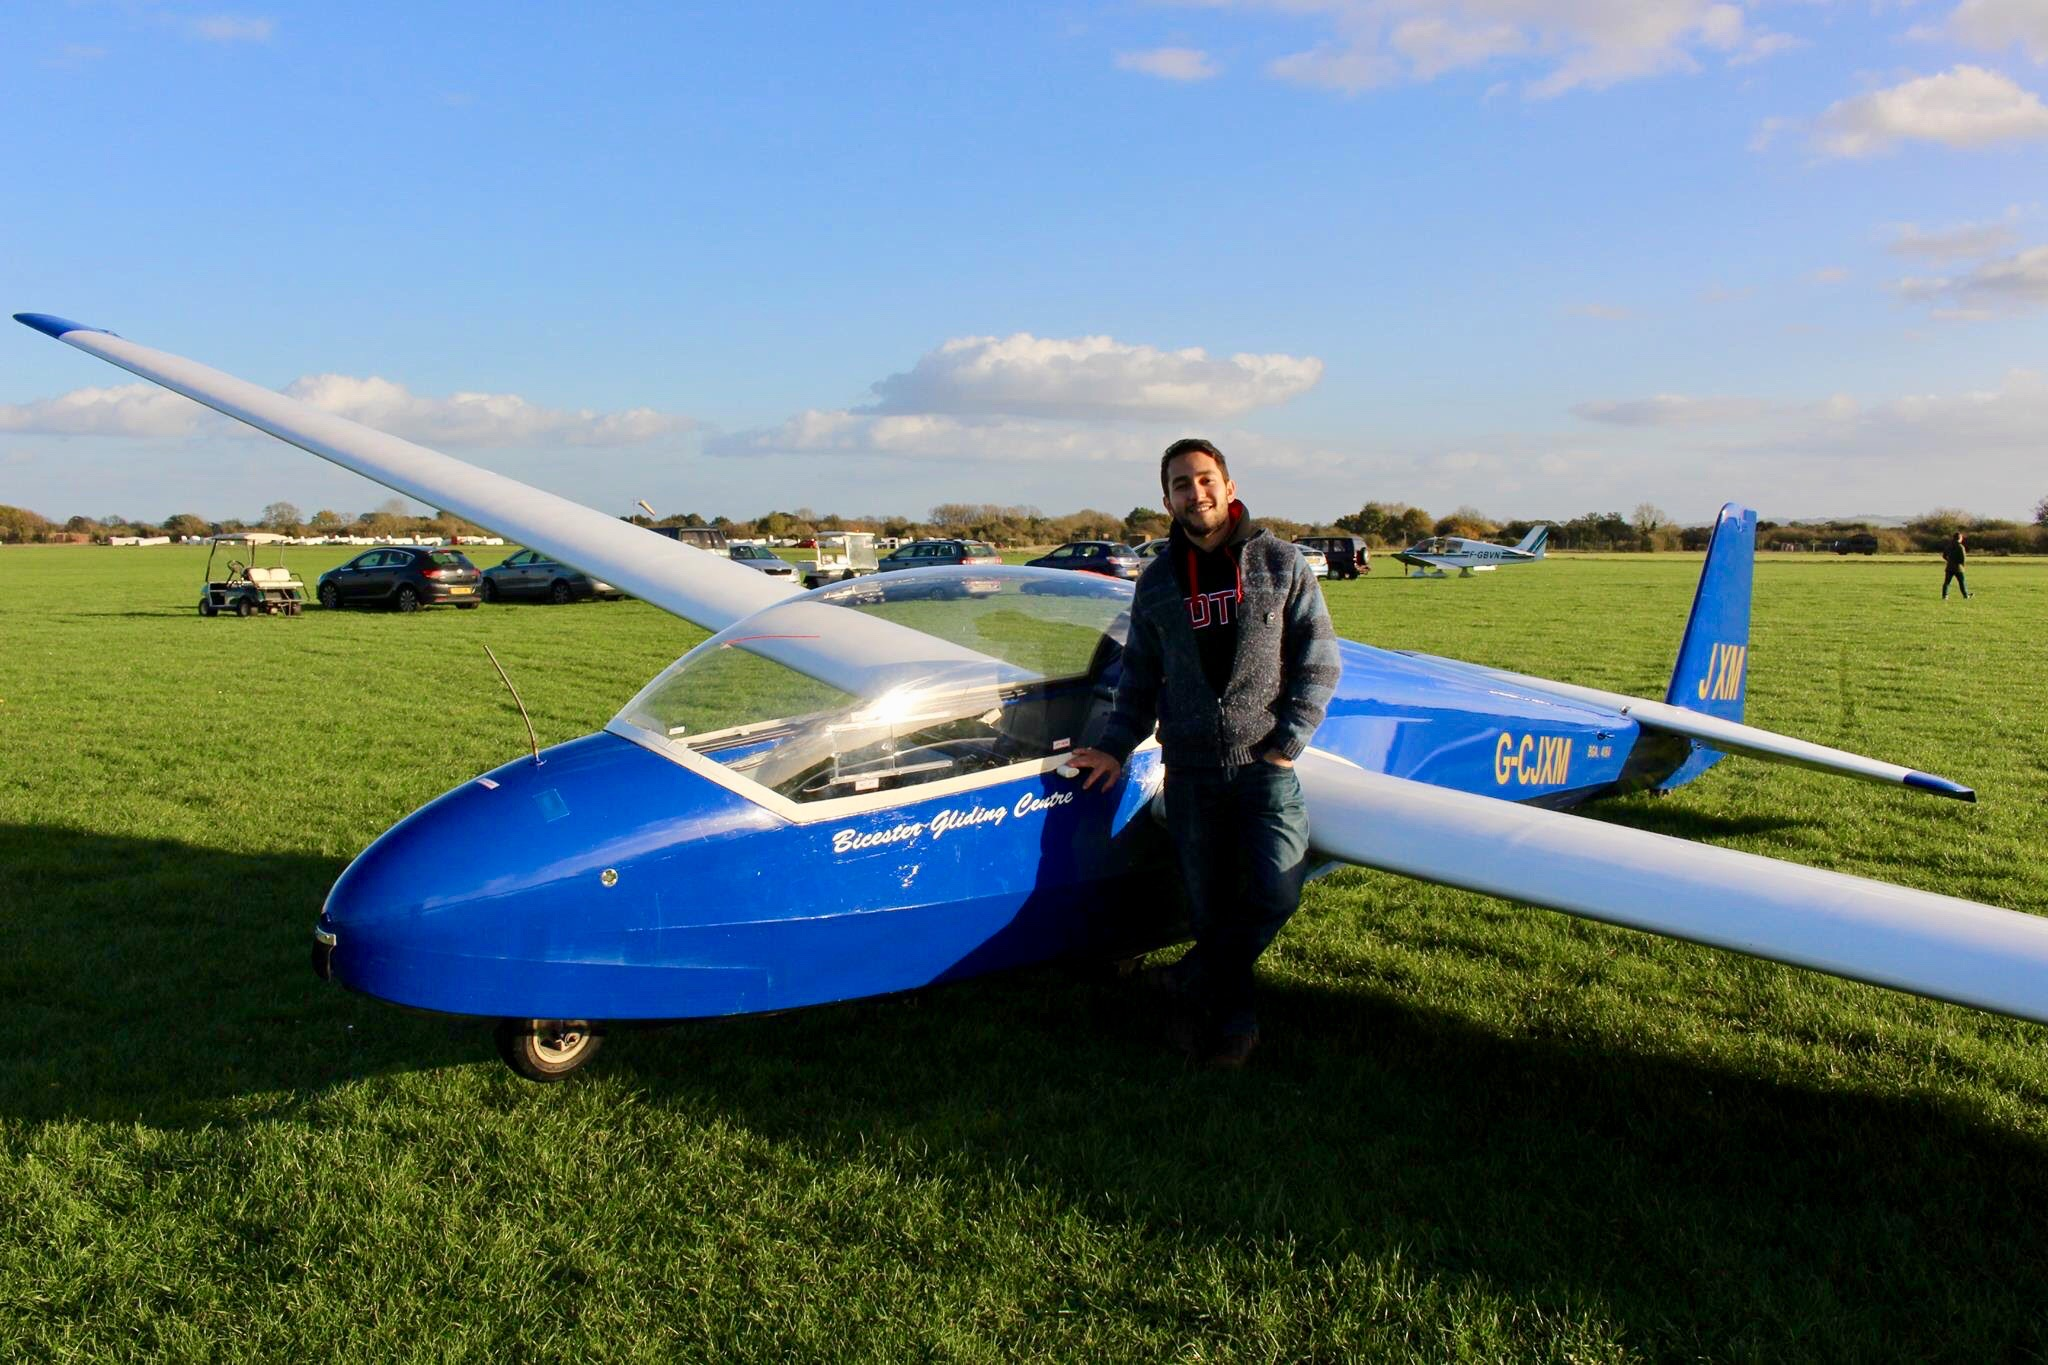 'Gliding' is this Turkish scholar's favourite pastime at the University of Oxford